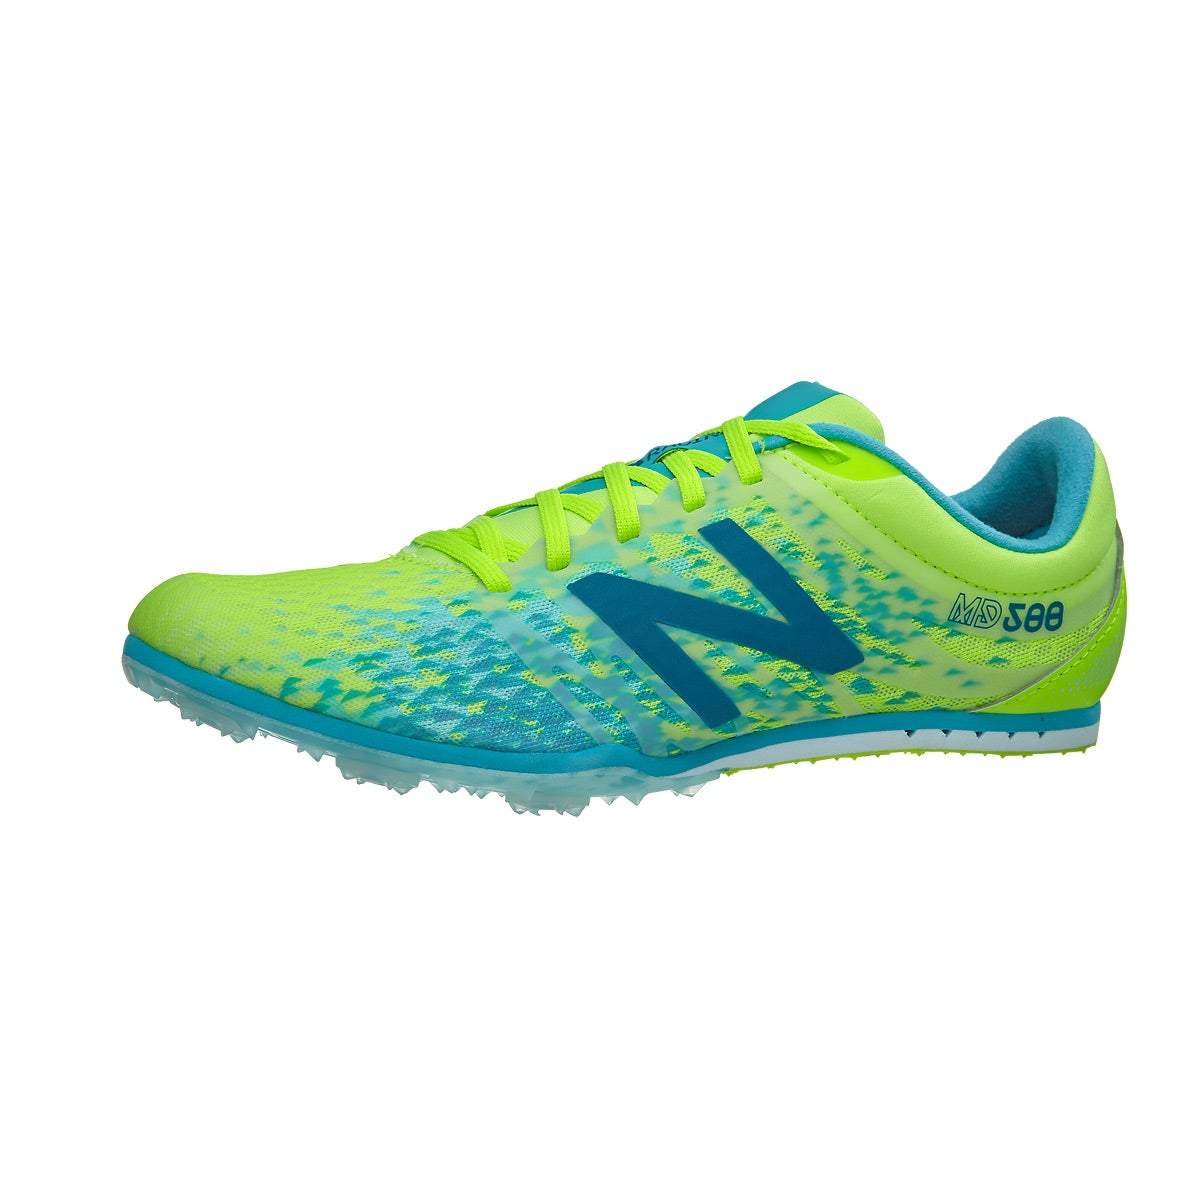 new balance md500 womens